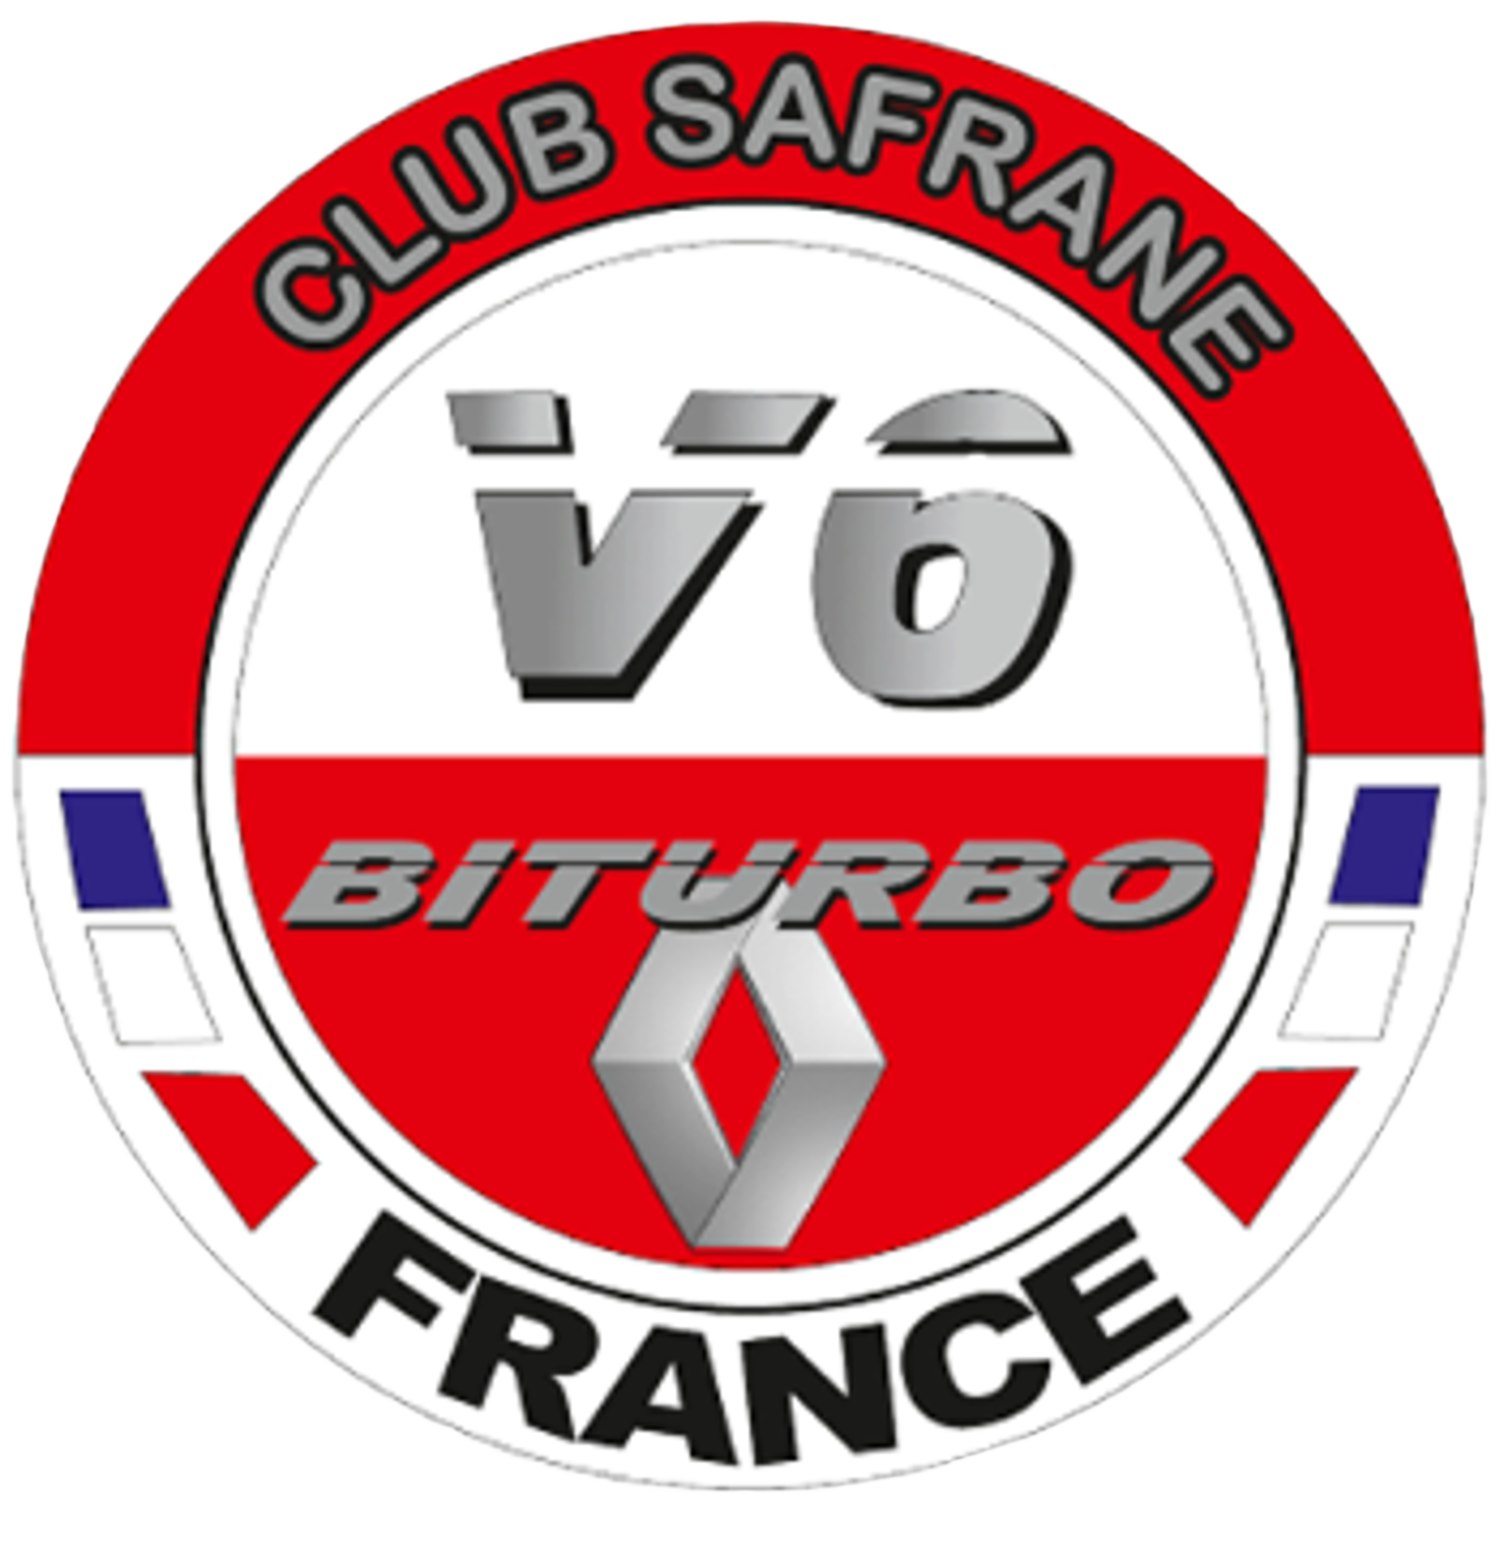 logo_club-safrane_biturbo_vectoriel